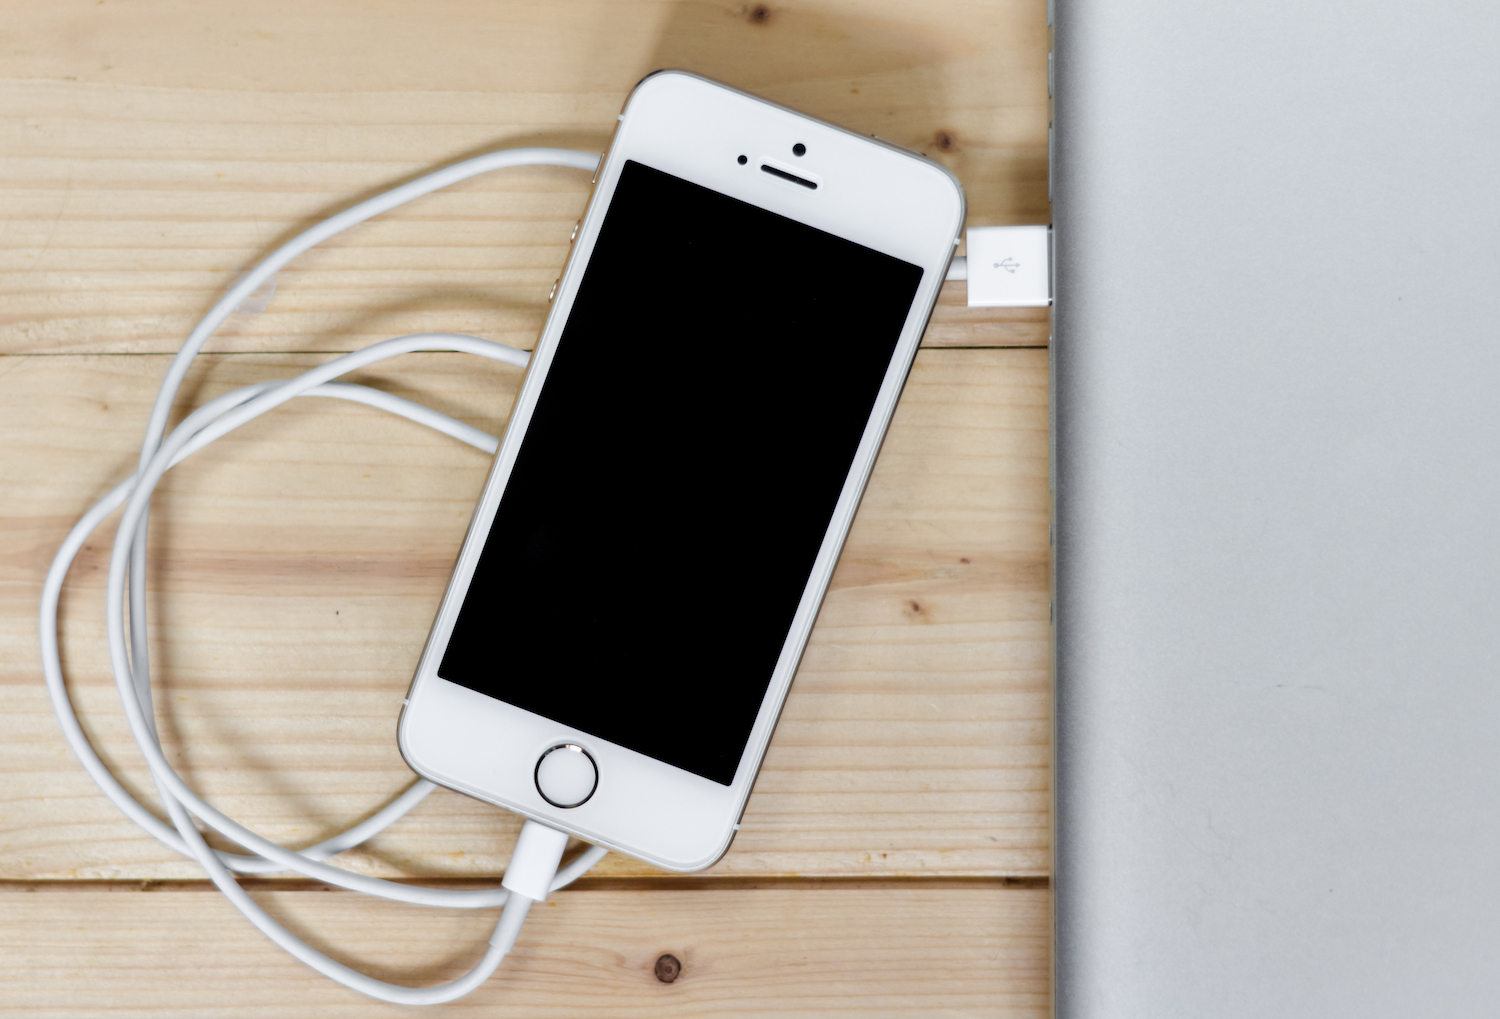 Using iPhone while charging it can be deadly